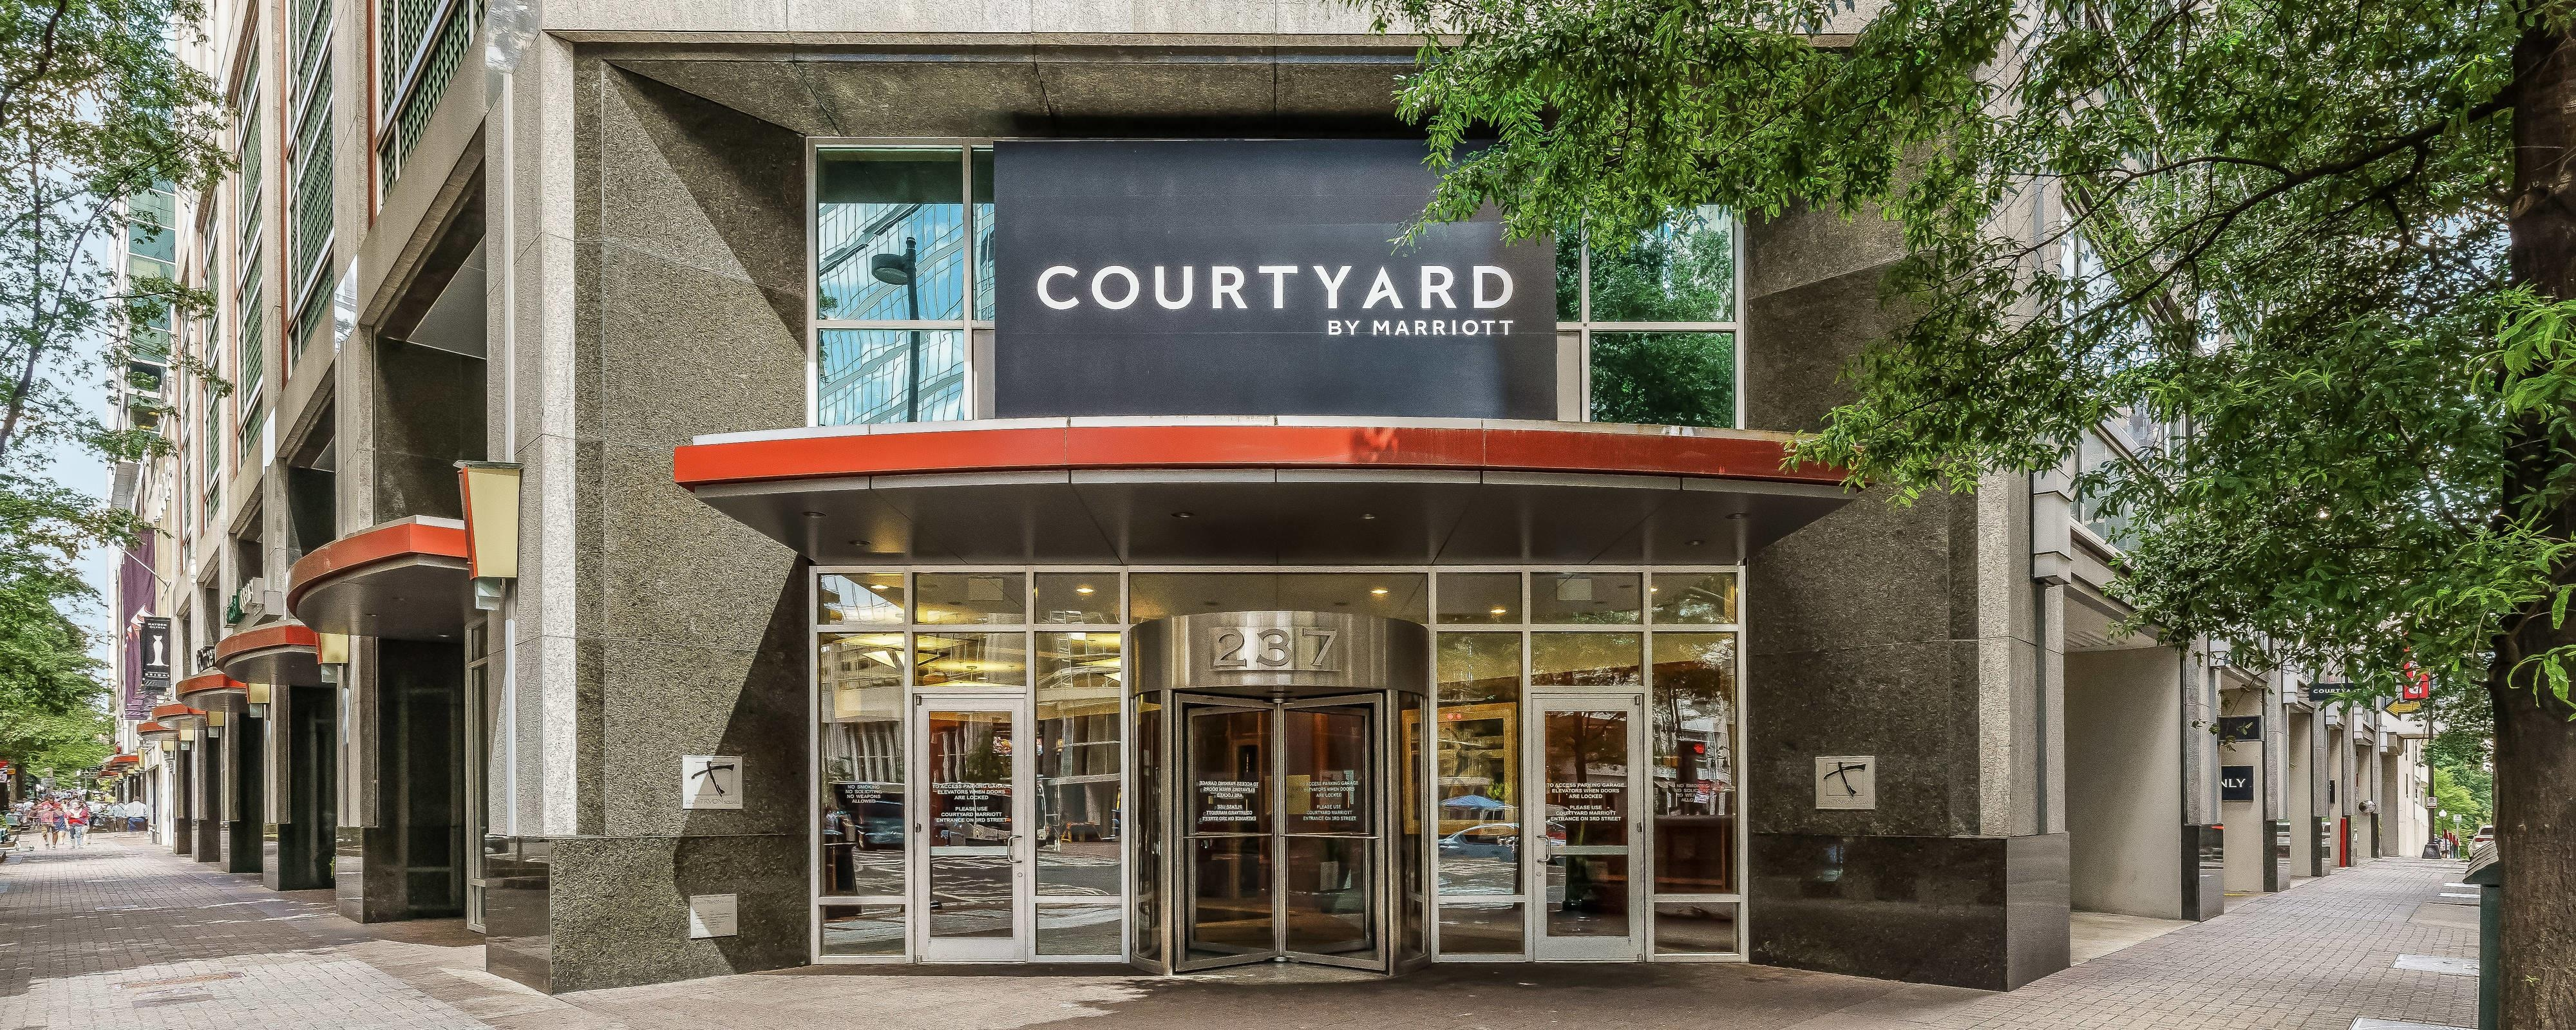 Charlotte Hotels | Courtyard by Marriott Charlotte City Center on